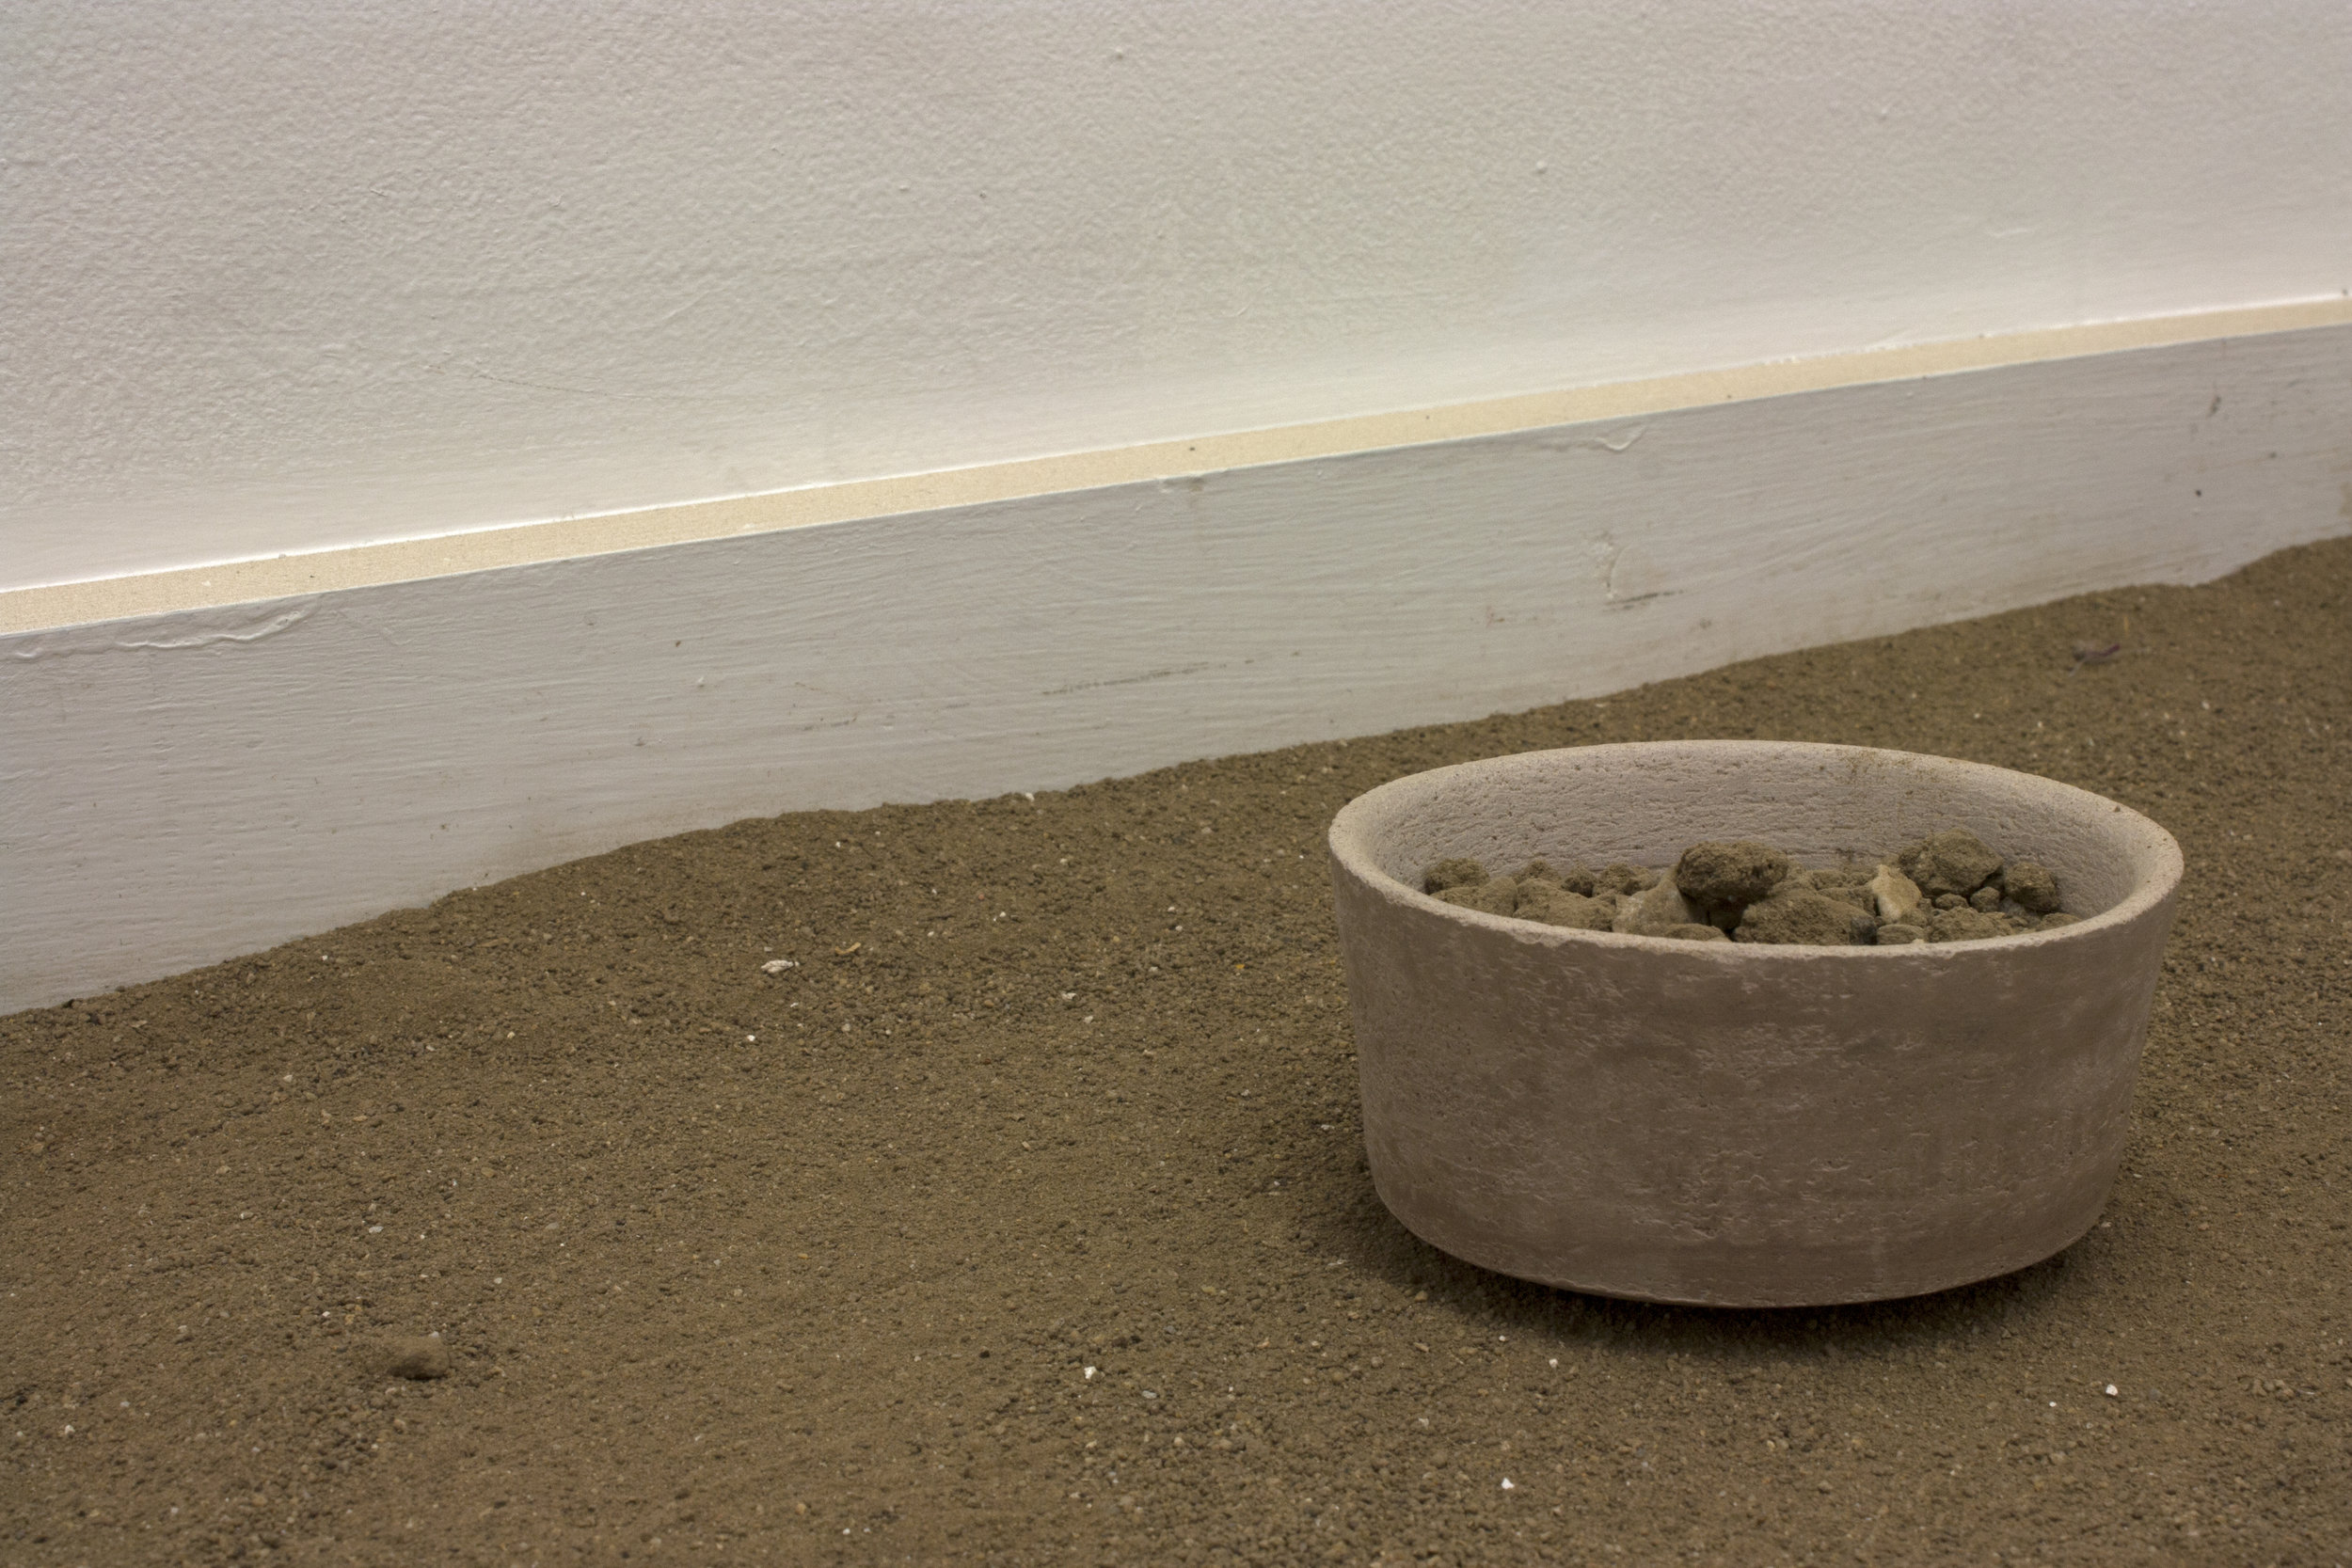 another and another    Sifted Dirt, Unfired Clay, and Pushpin in Room   8.5' x 9' x 10'  2016